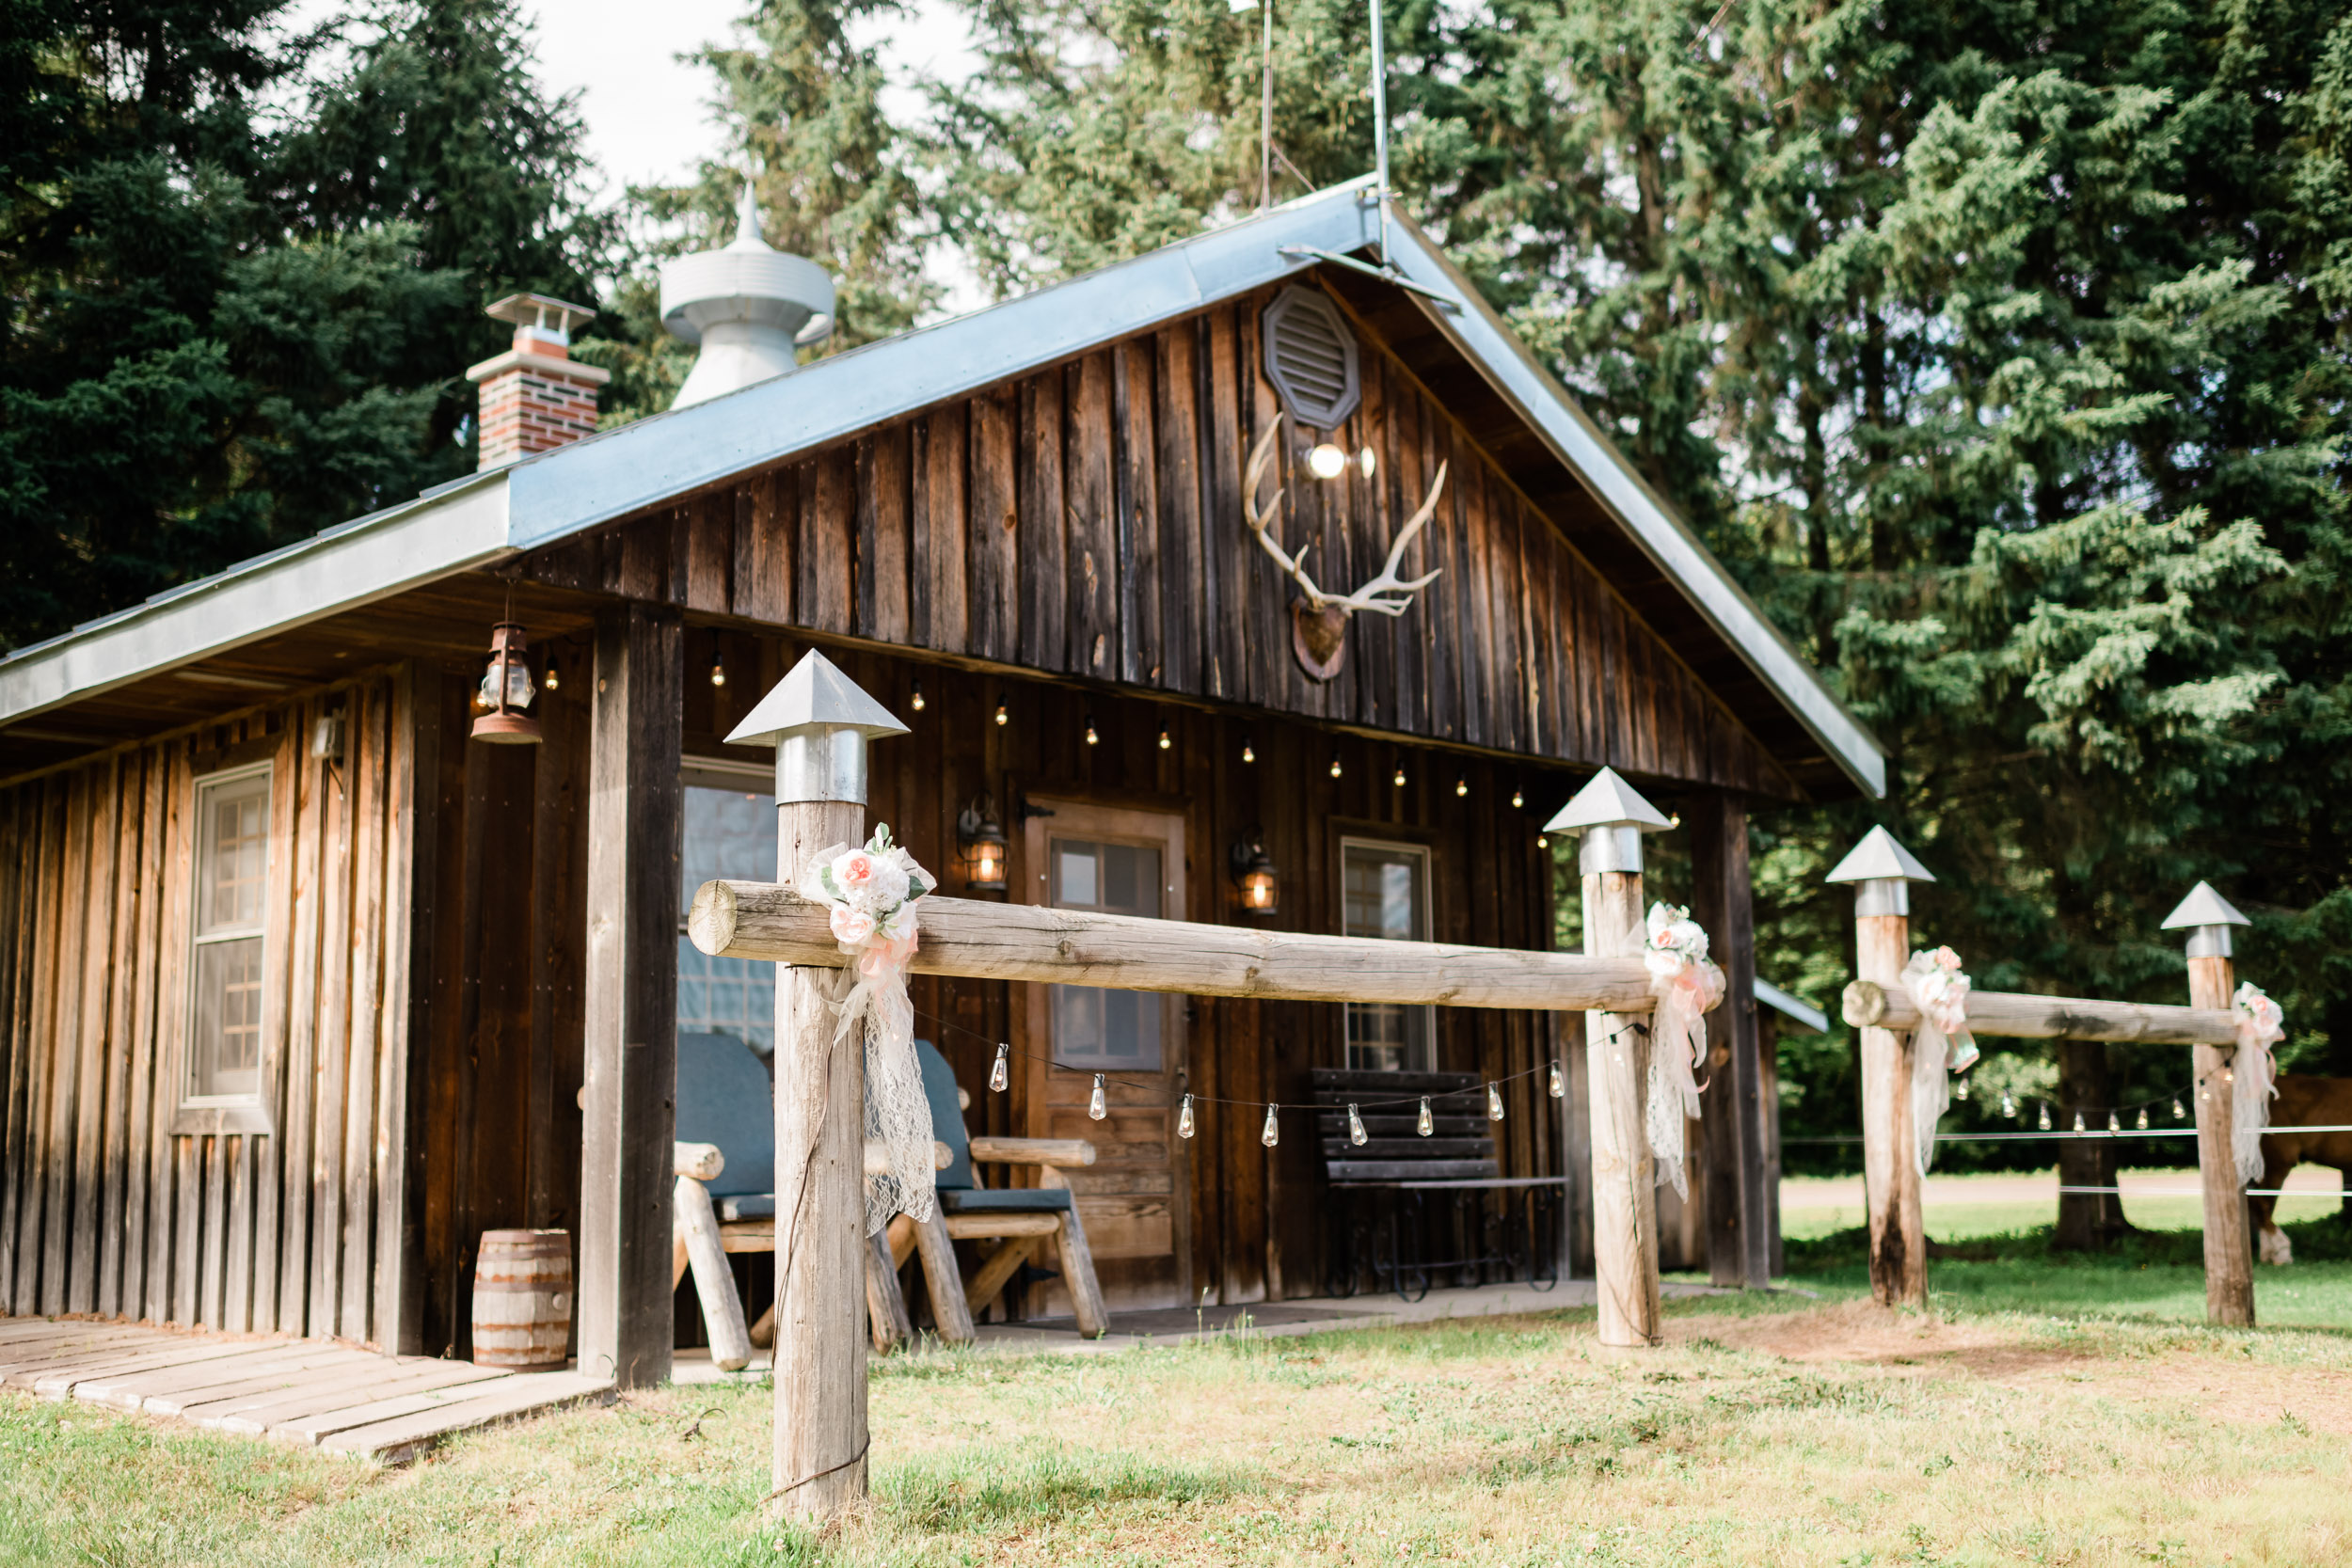 Cabin decorated for wedding reception